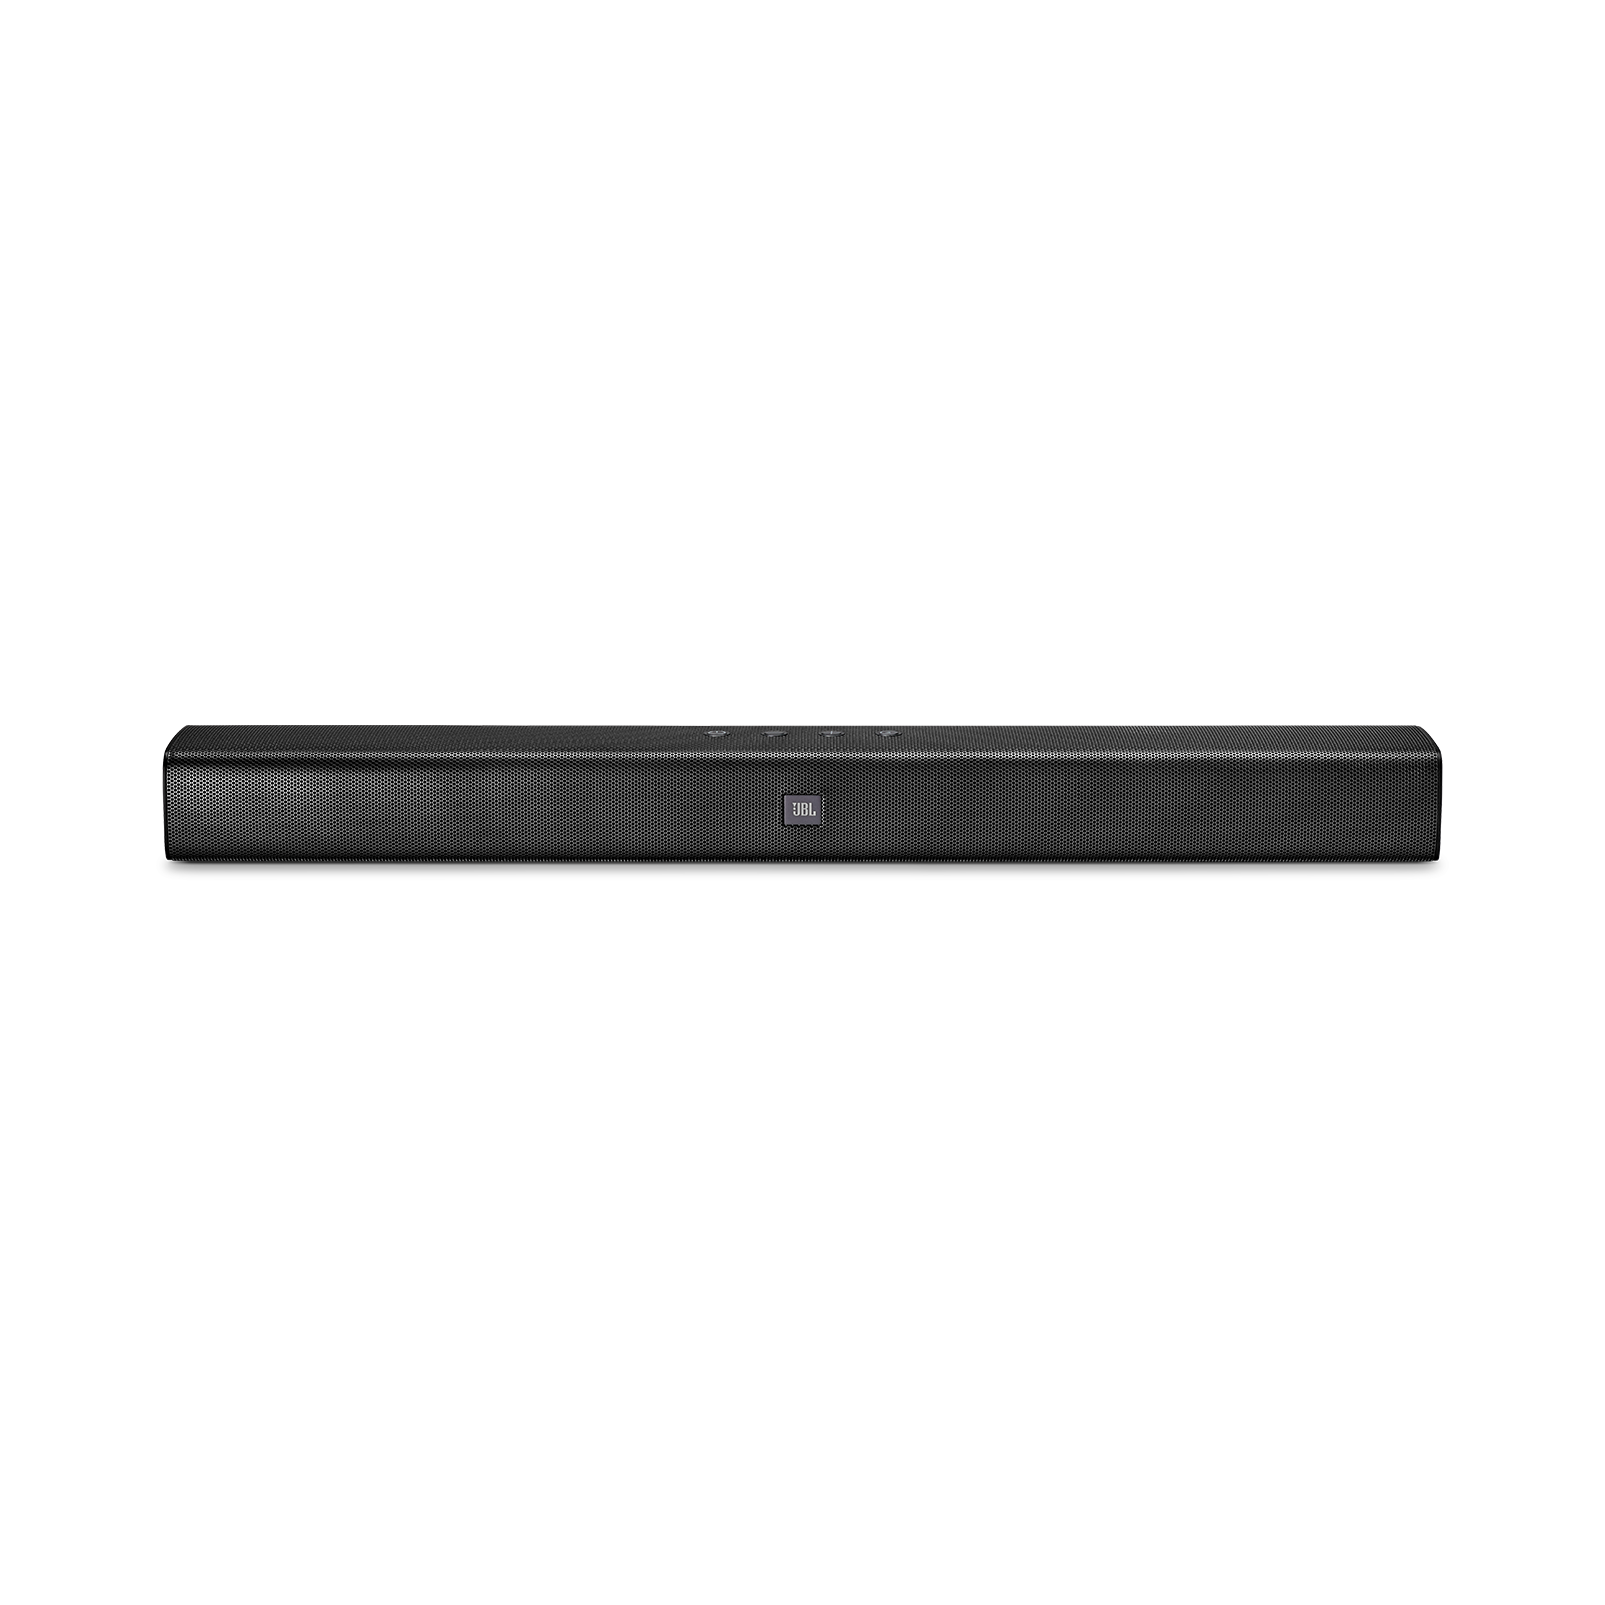 JBL Bar Studio - Black - 2.0 - Channel Soundbar with Bluetooth - Front